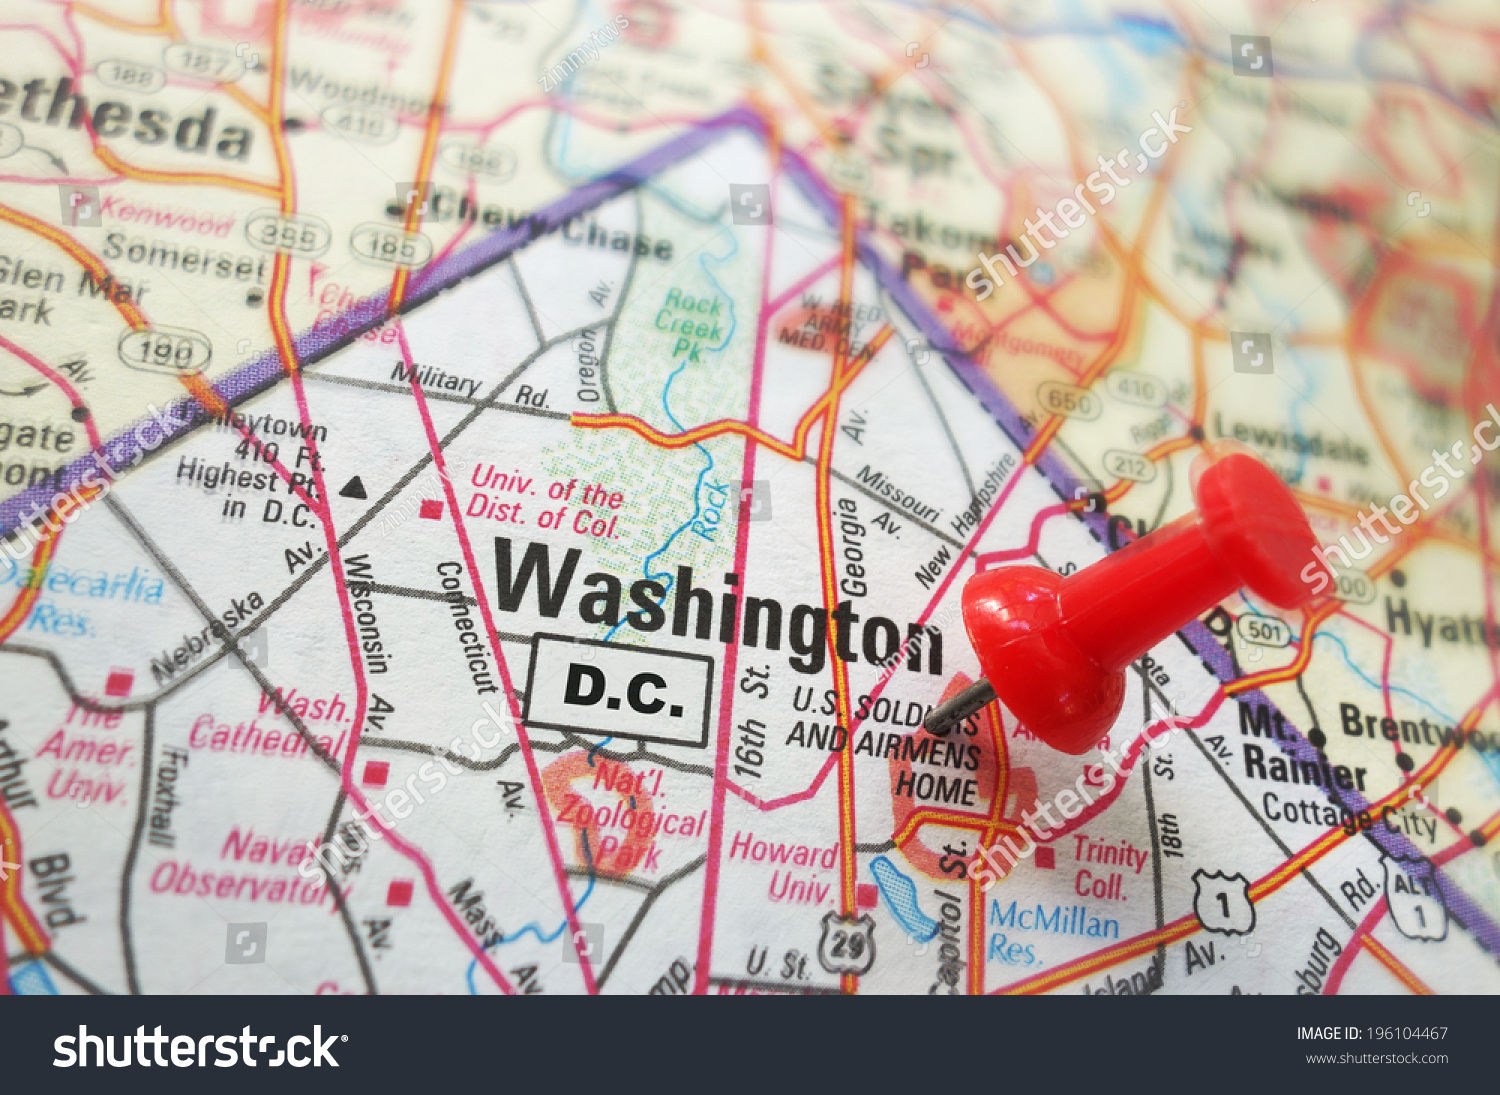 Closeup Map Washington Dc Red Pin Stock Photo  Shutterstock - Washington dc ferry map